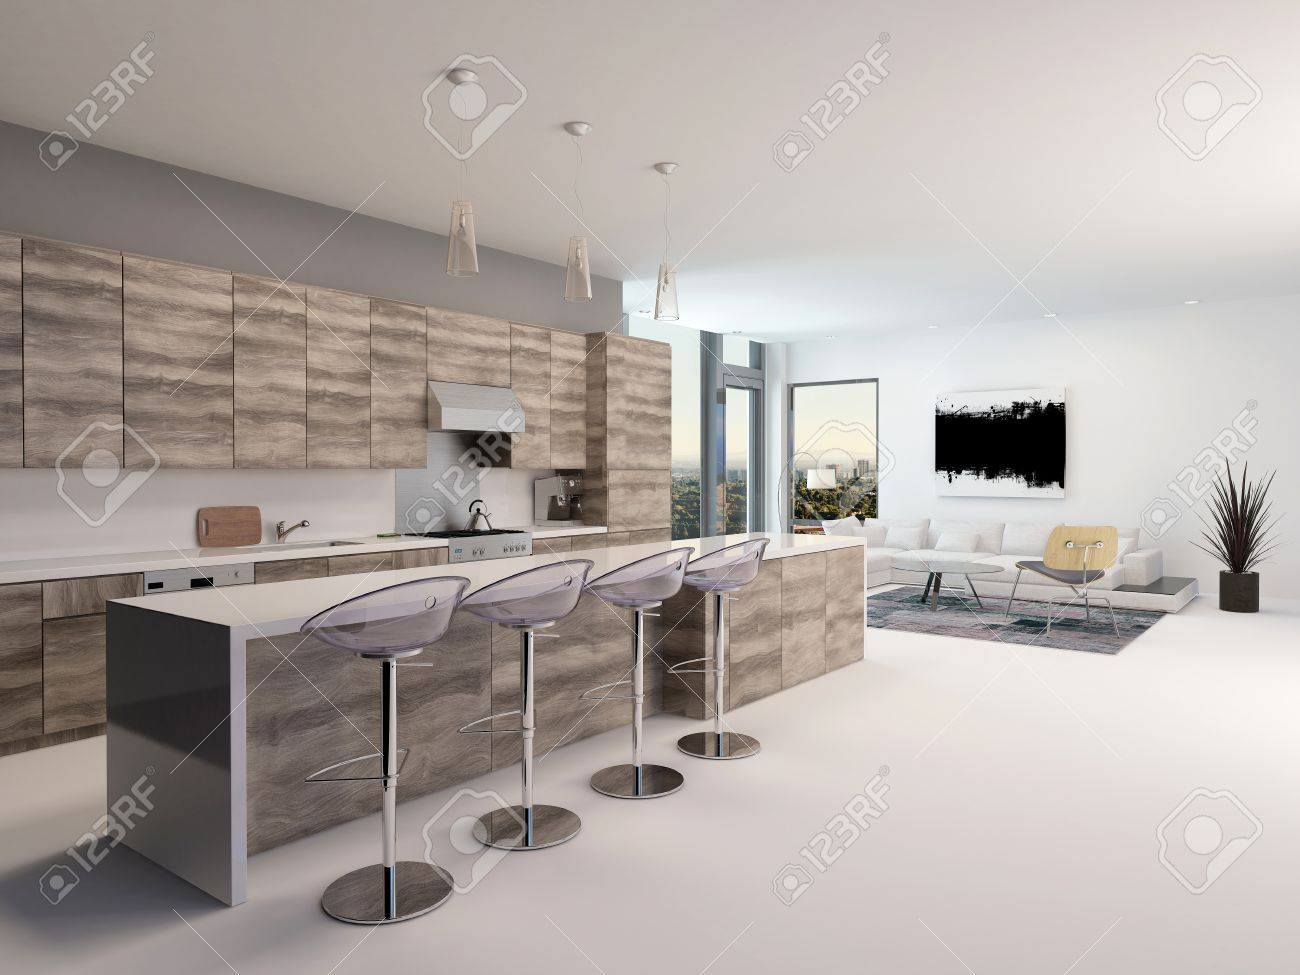 Rustic Style Wooden Open Plan Kitchen Interior With A Long Bar